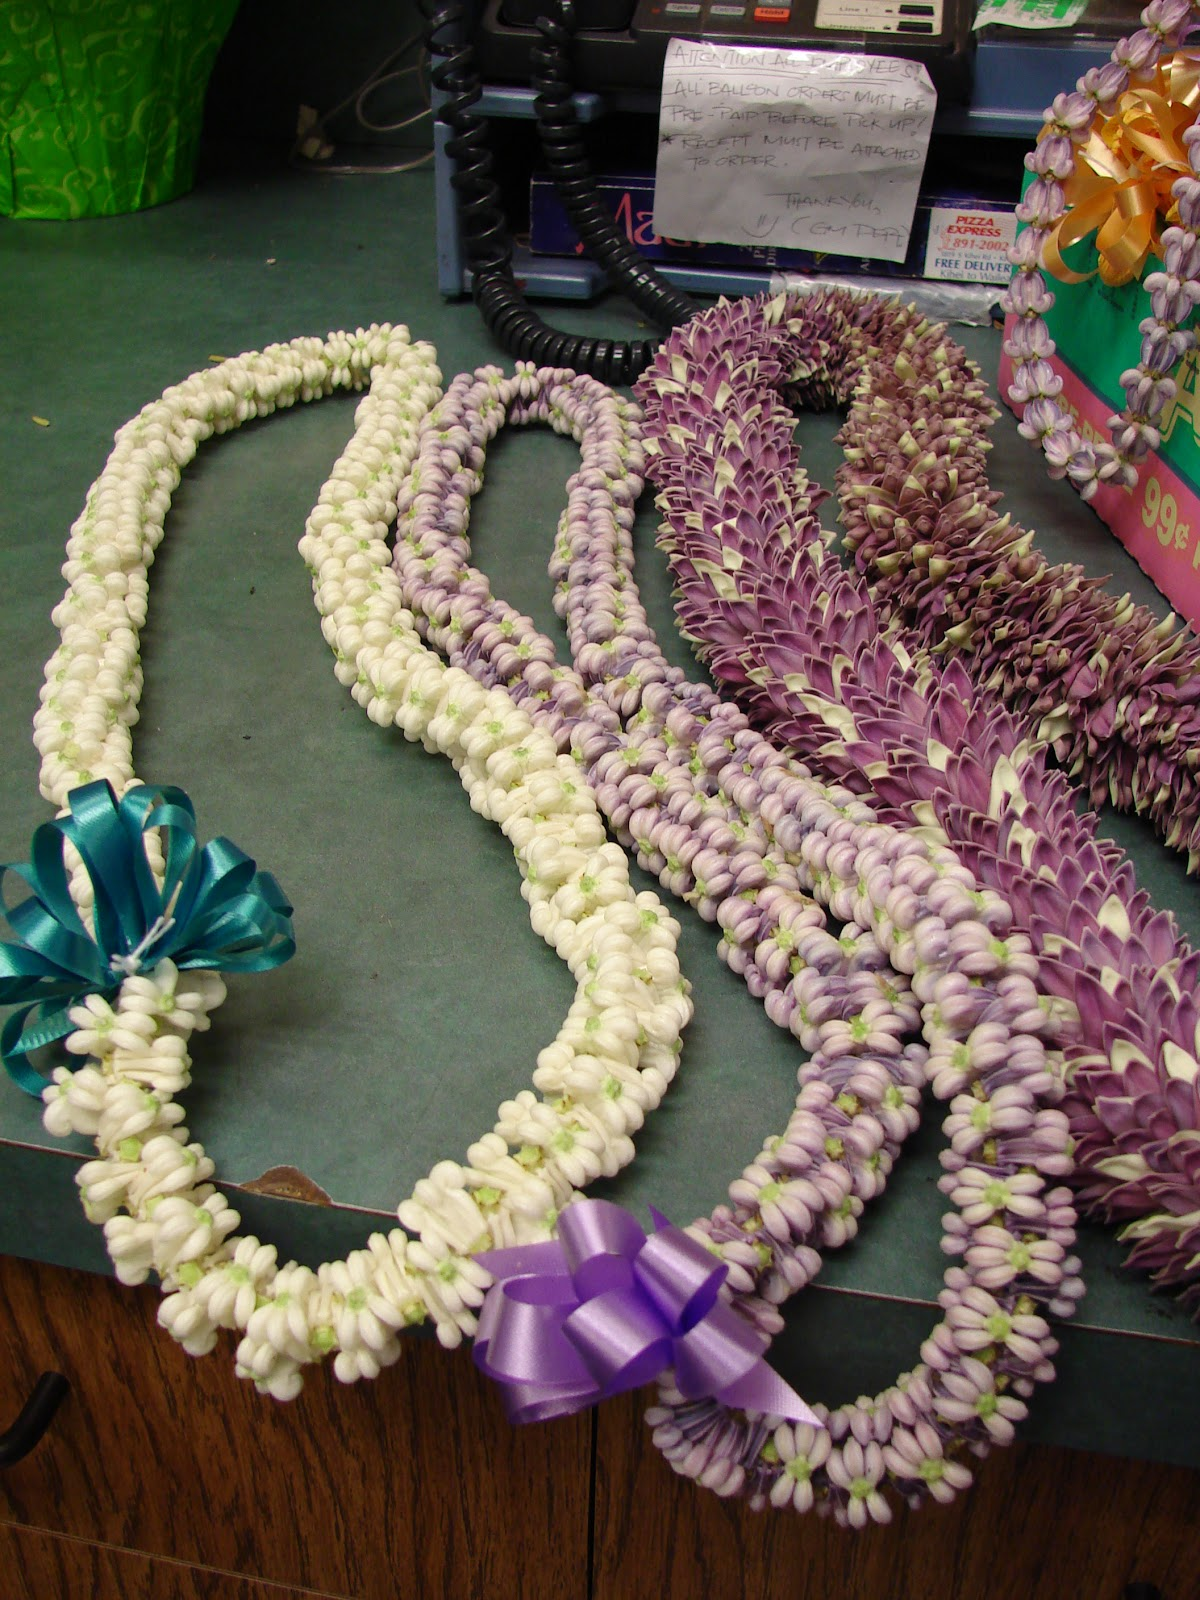 Ganesh chaturthi flowers may flower blog -  Beautiful Garlands Could Be Made Of These Petals And The Stigma Usually The White Colored Variety Is Used In Pujas Root Leaves Latex And Flowers